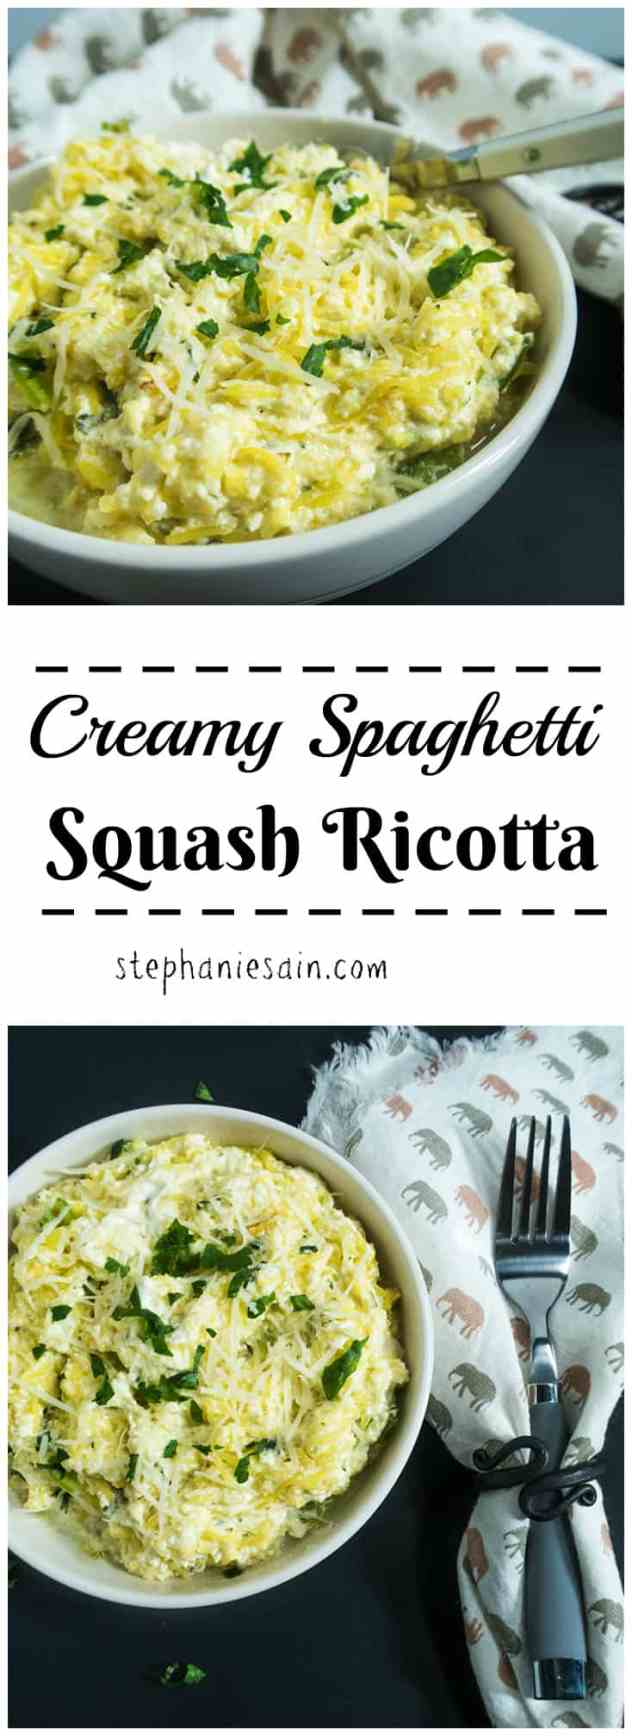 Creamy Spaghetti Squash Ricotta is made with a tasty, cheesy sauce and is an easy to prepare dinner. Low carb, Gluten Free & Vegetarian.